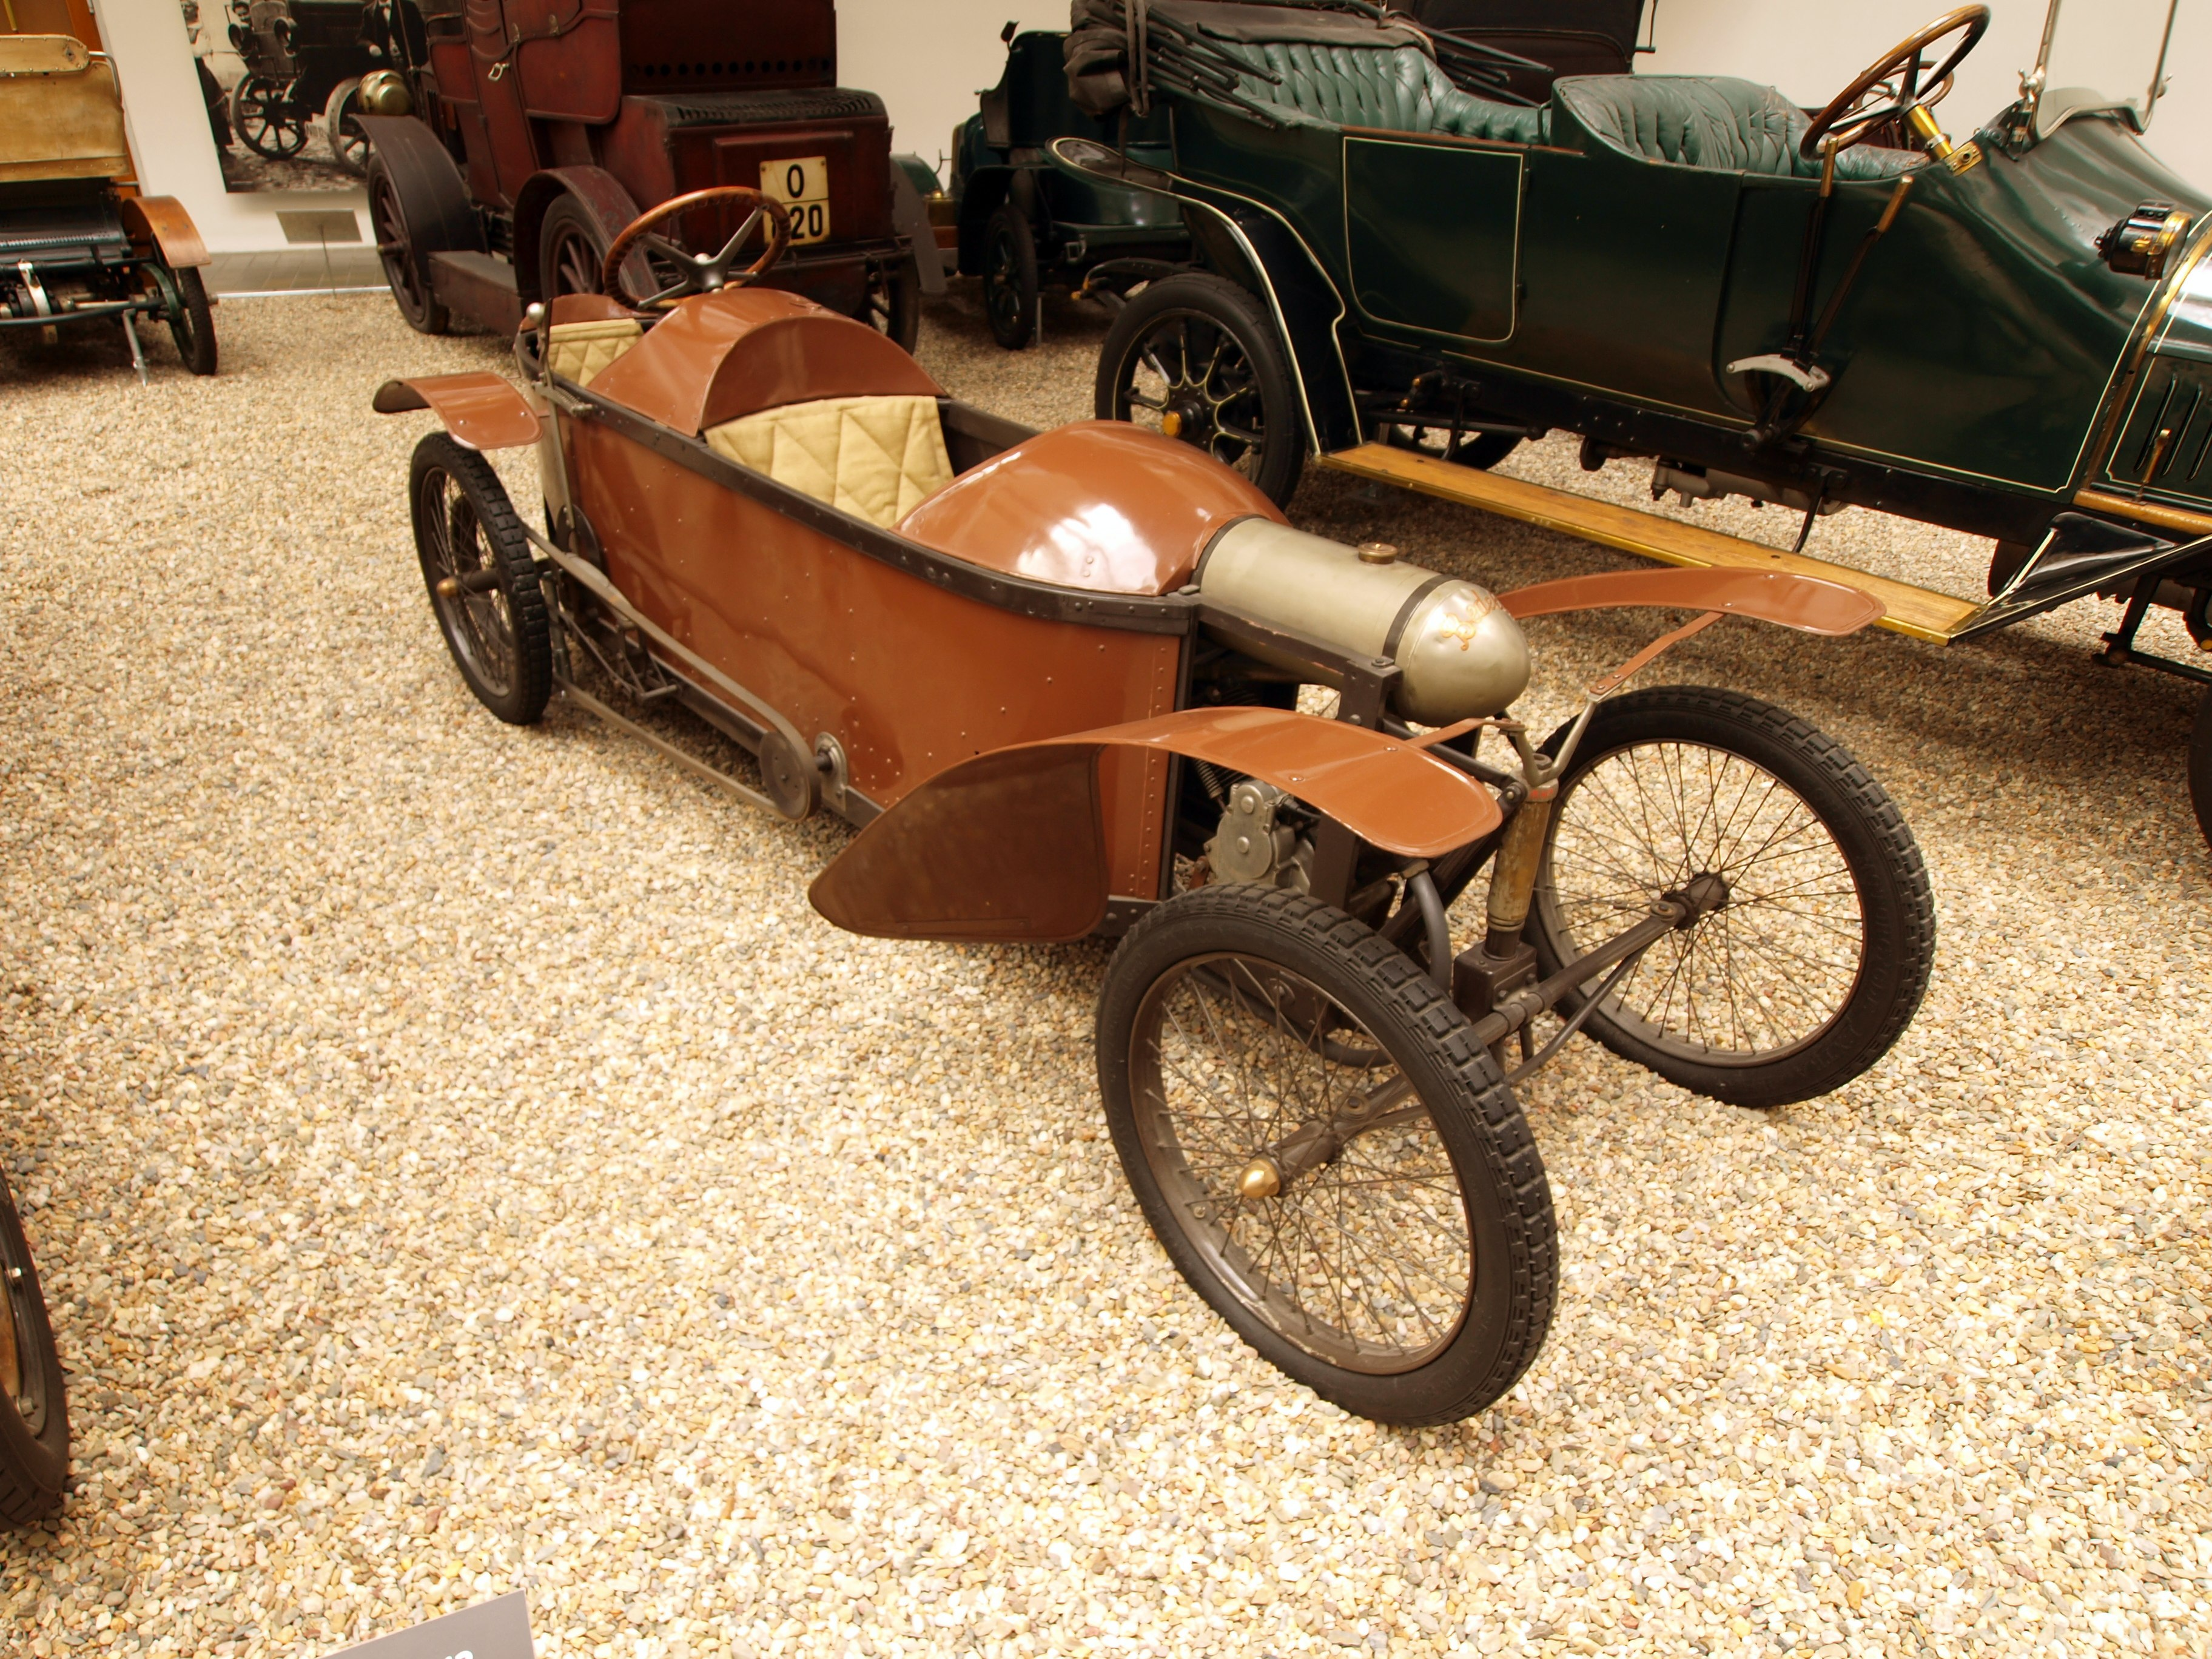 Cyclecar - The complete information and online sale with free